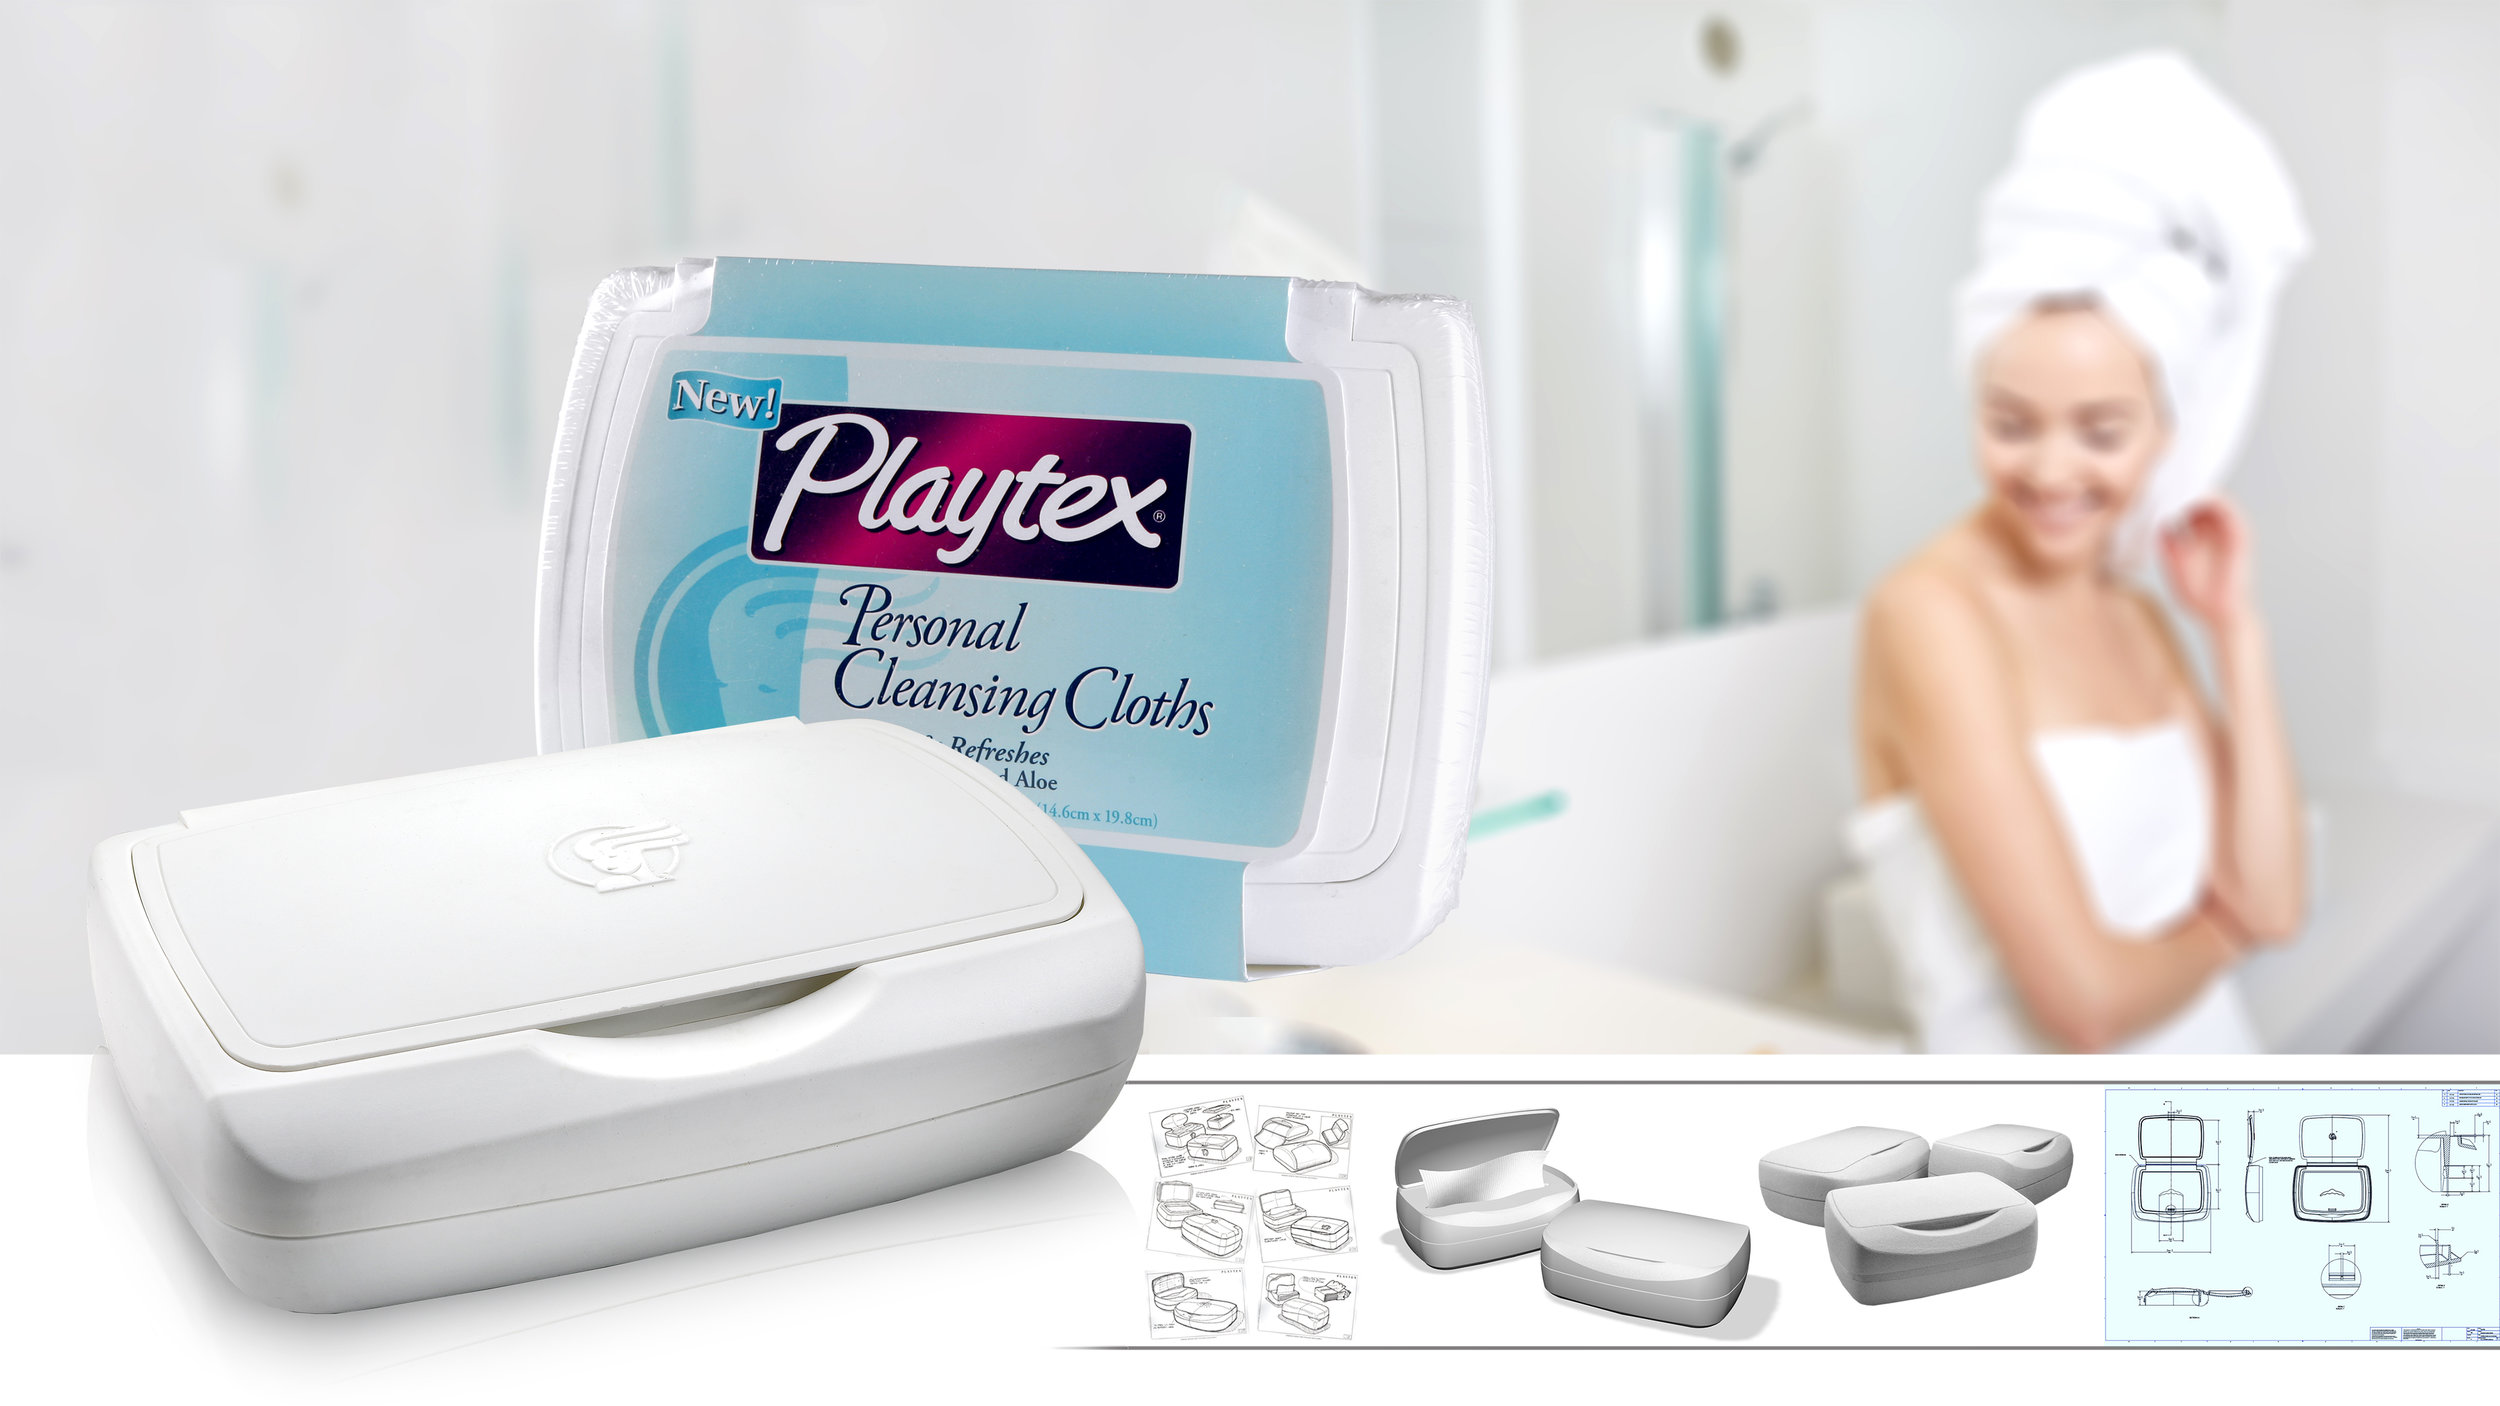 Playtex_Filmstrip.jpg